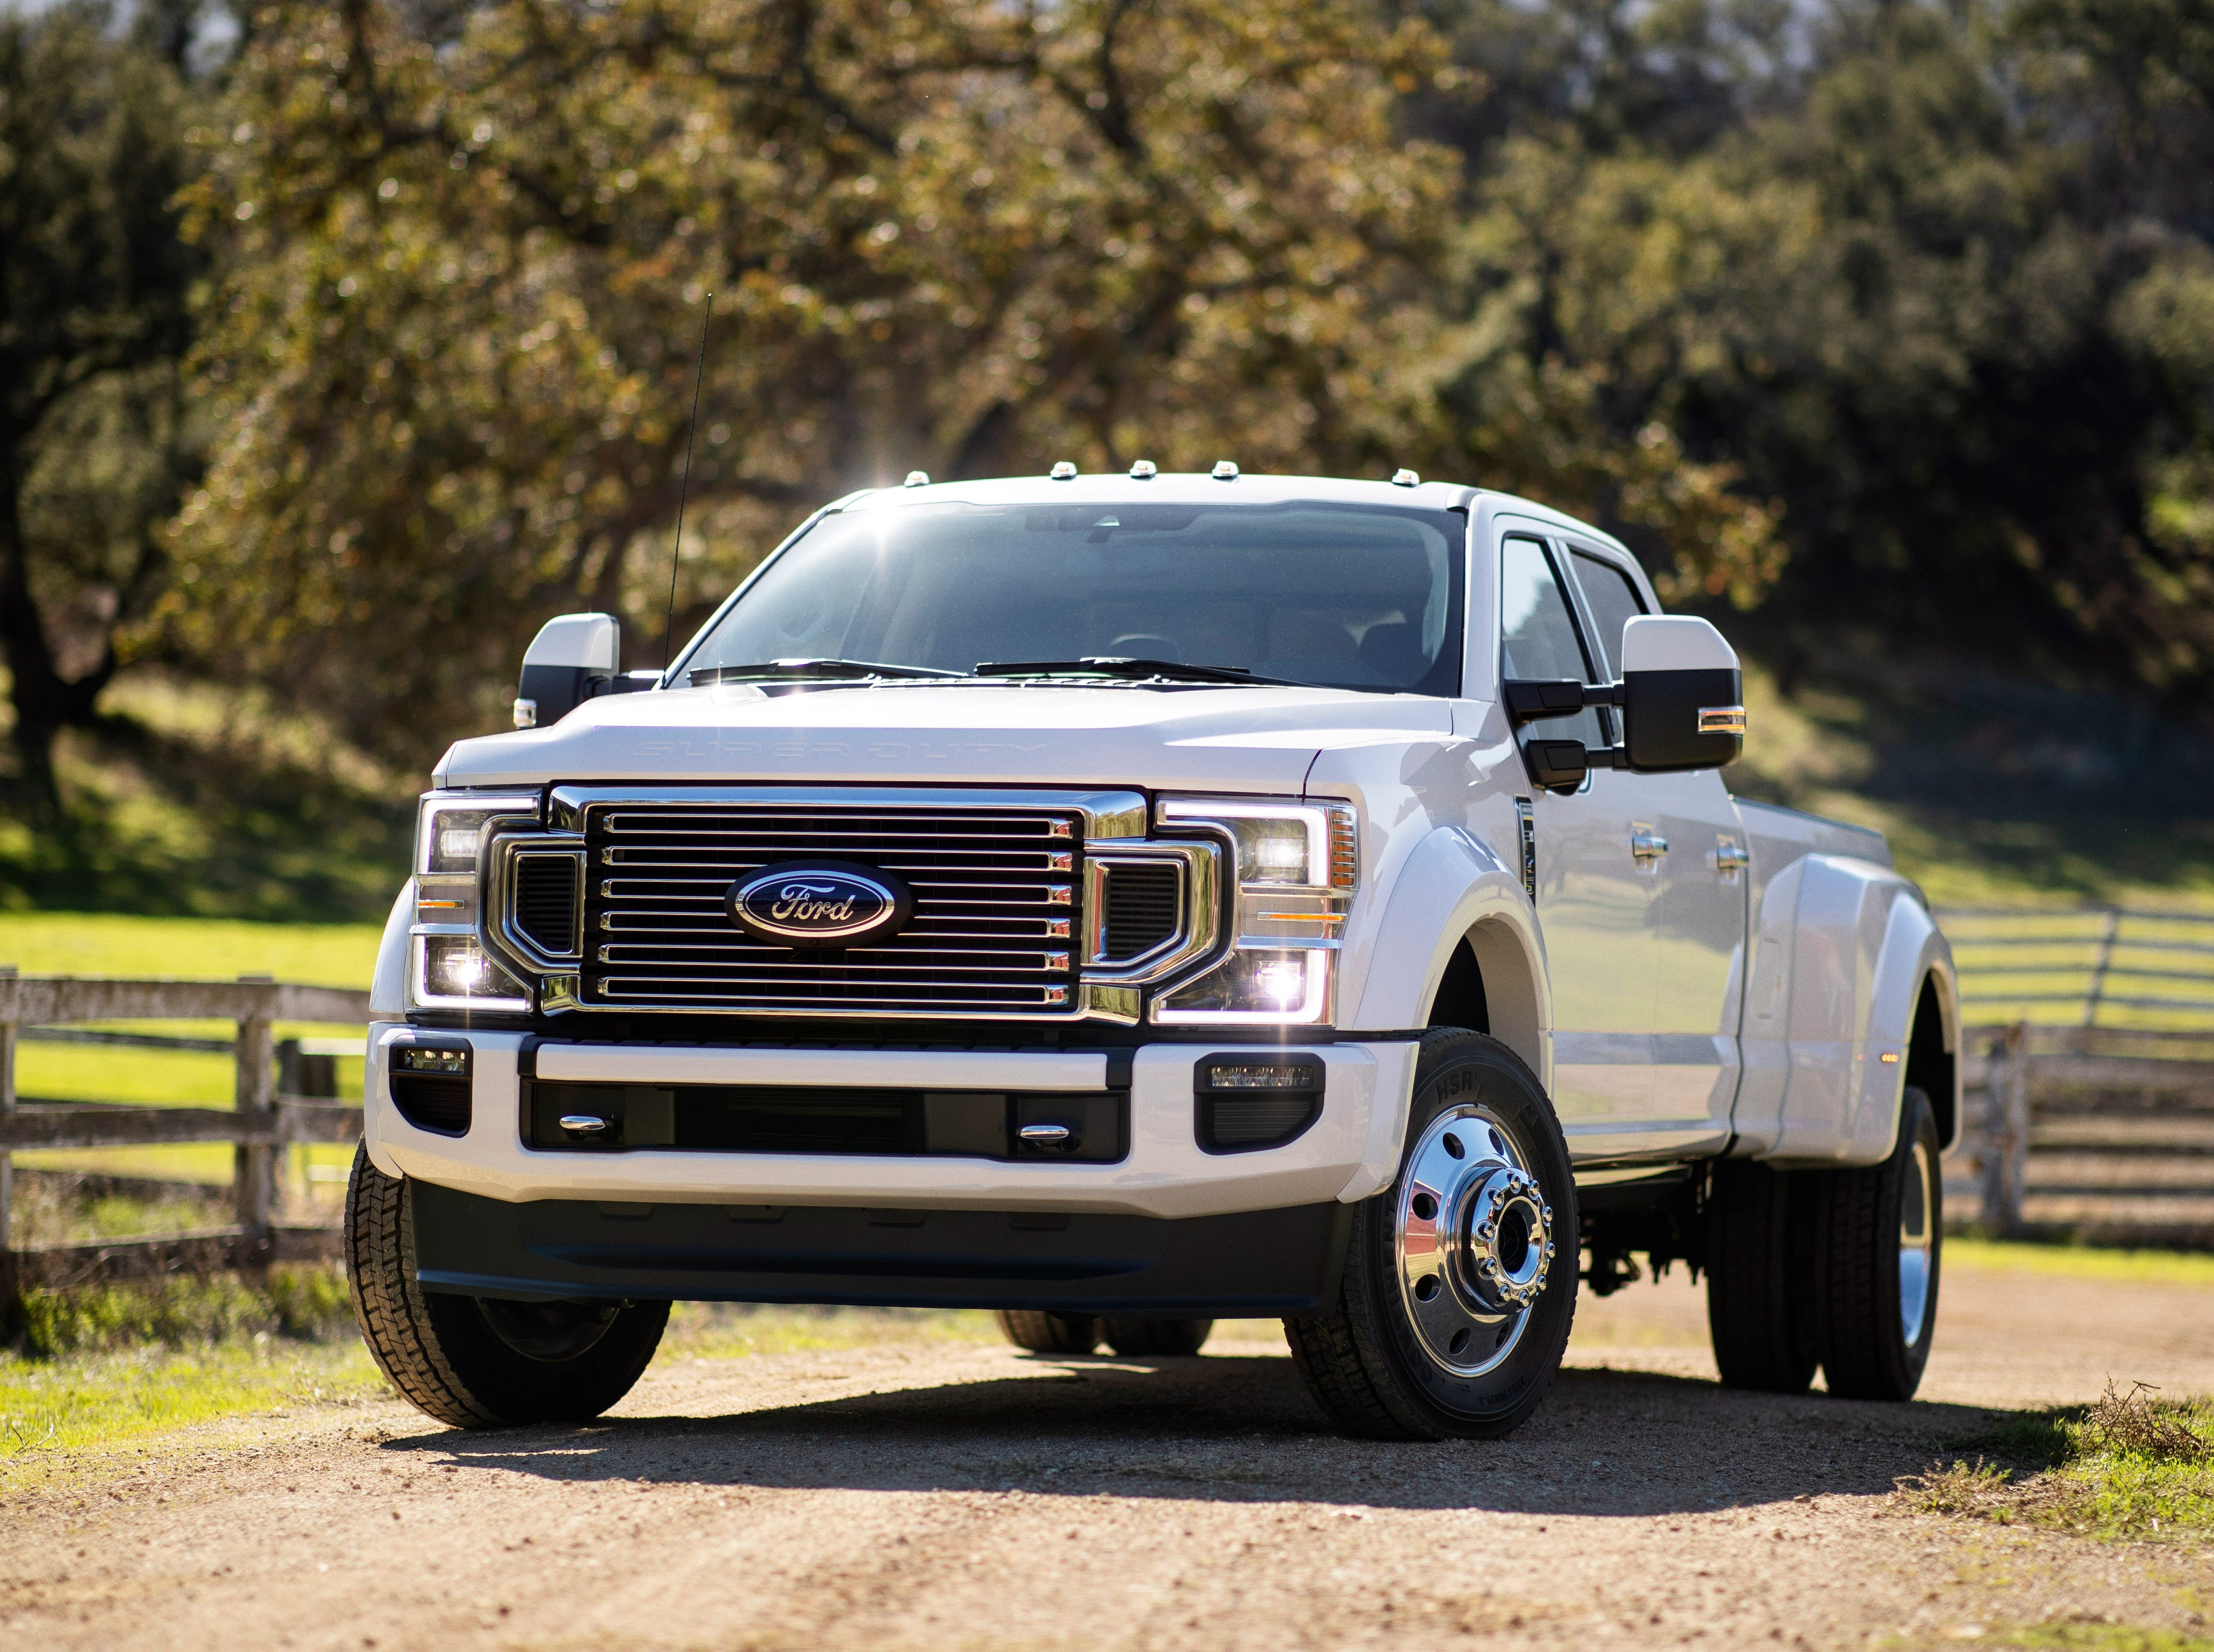 The Ford F-450 Limited Super Duty pickup truck